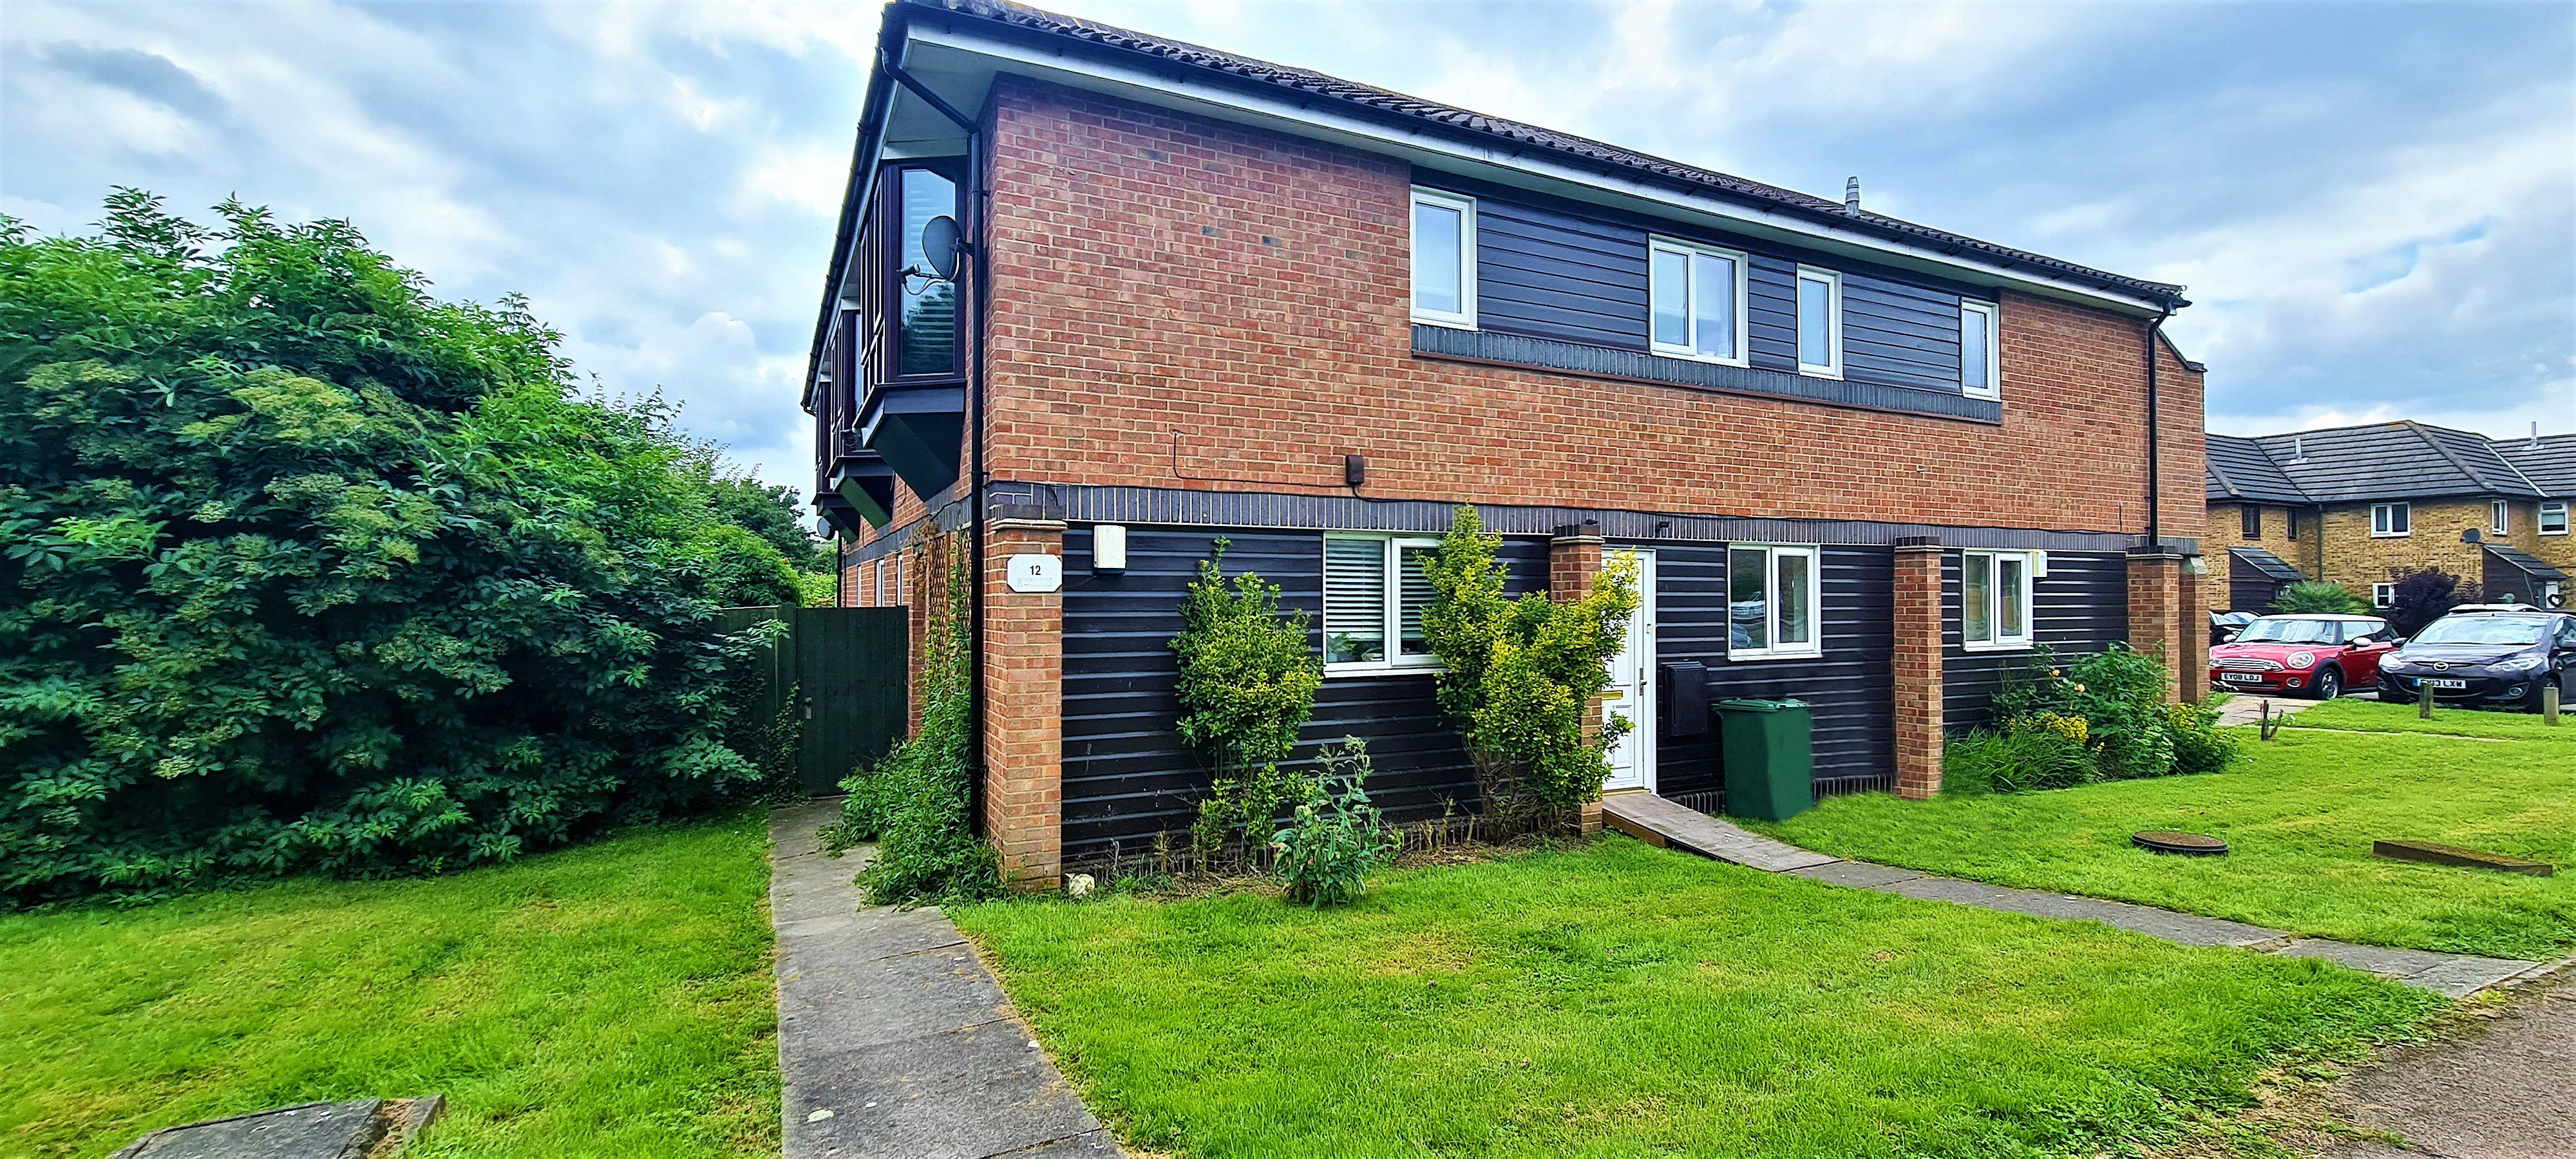 1 bed for sale in Orlando Drive, Basildon 0